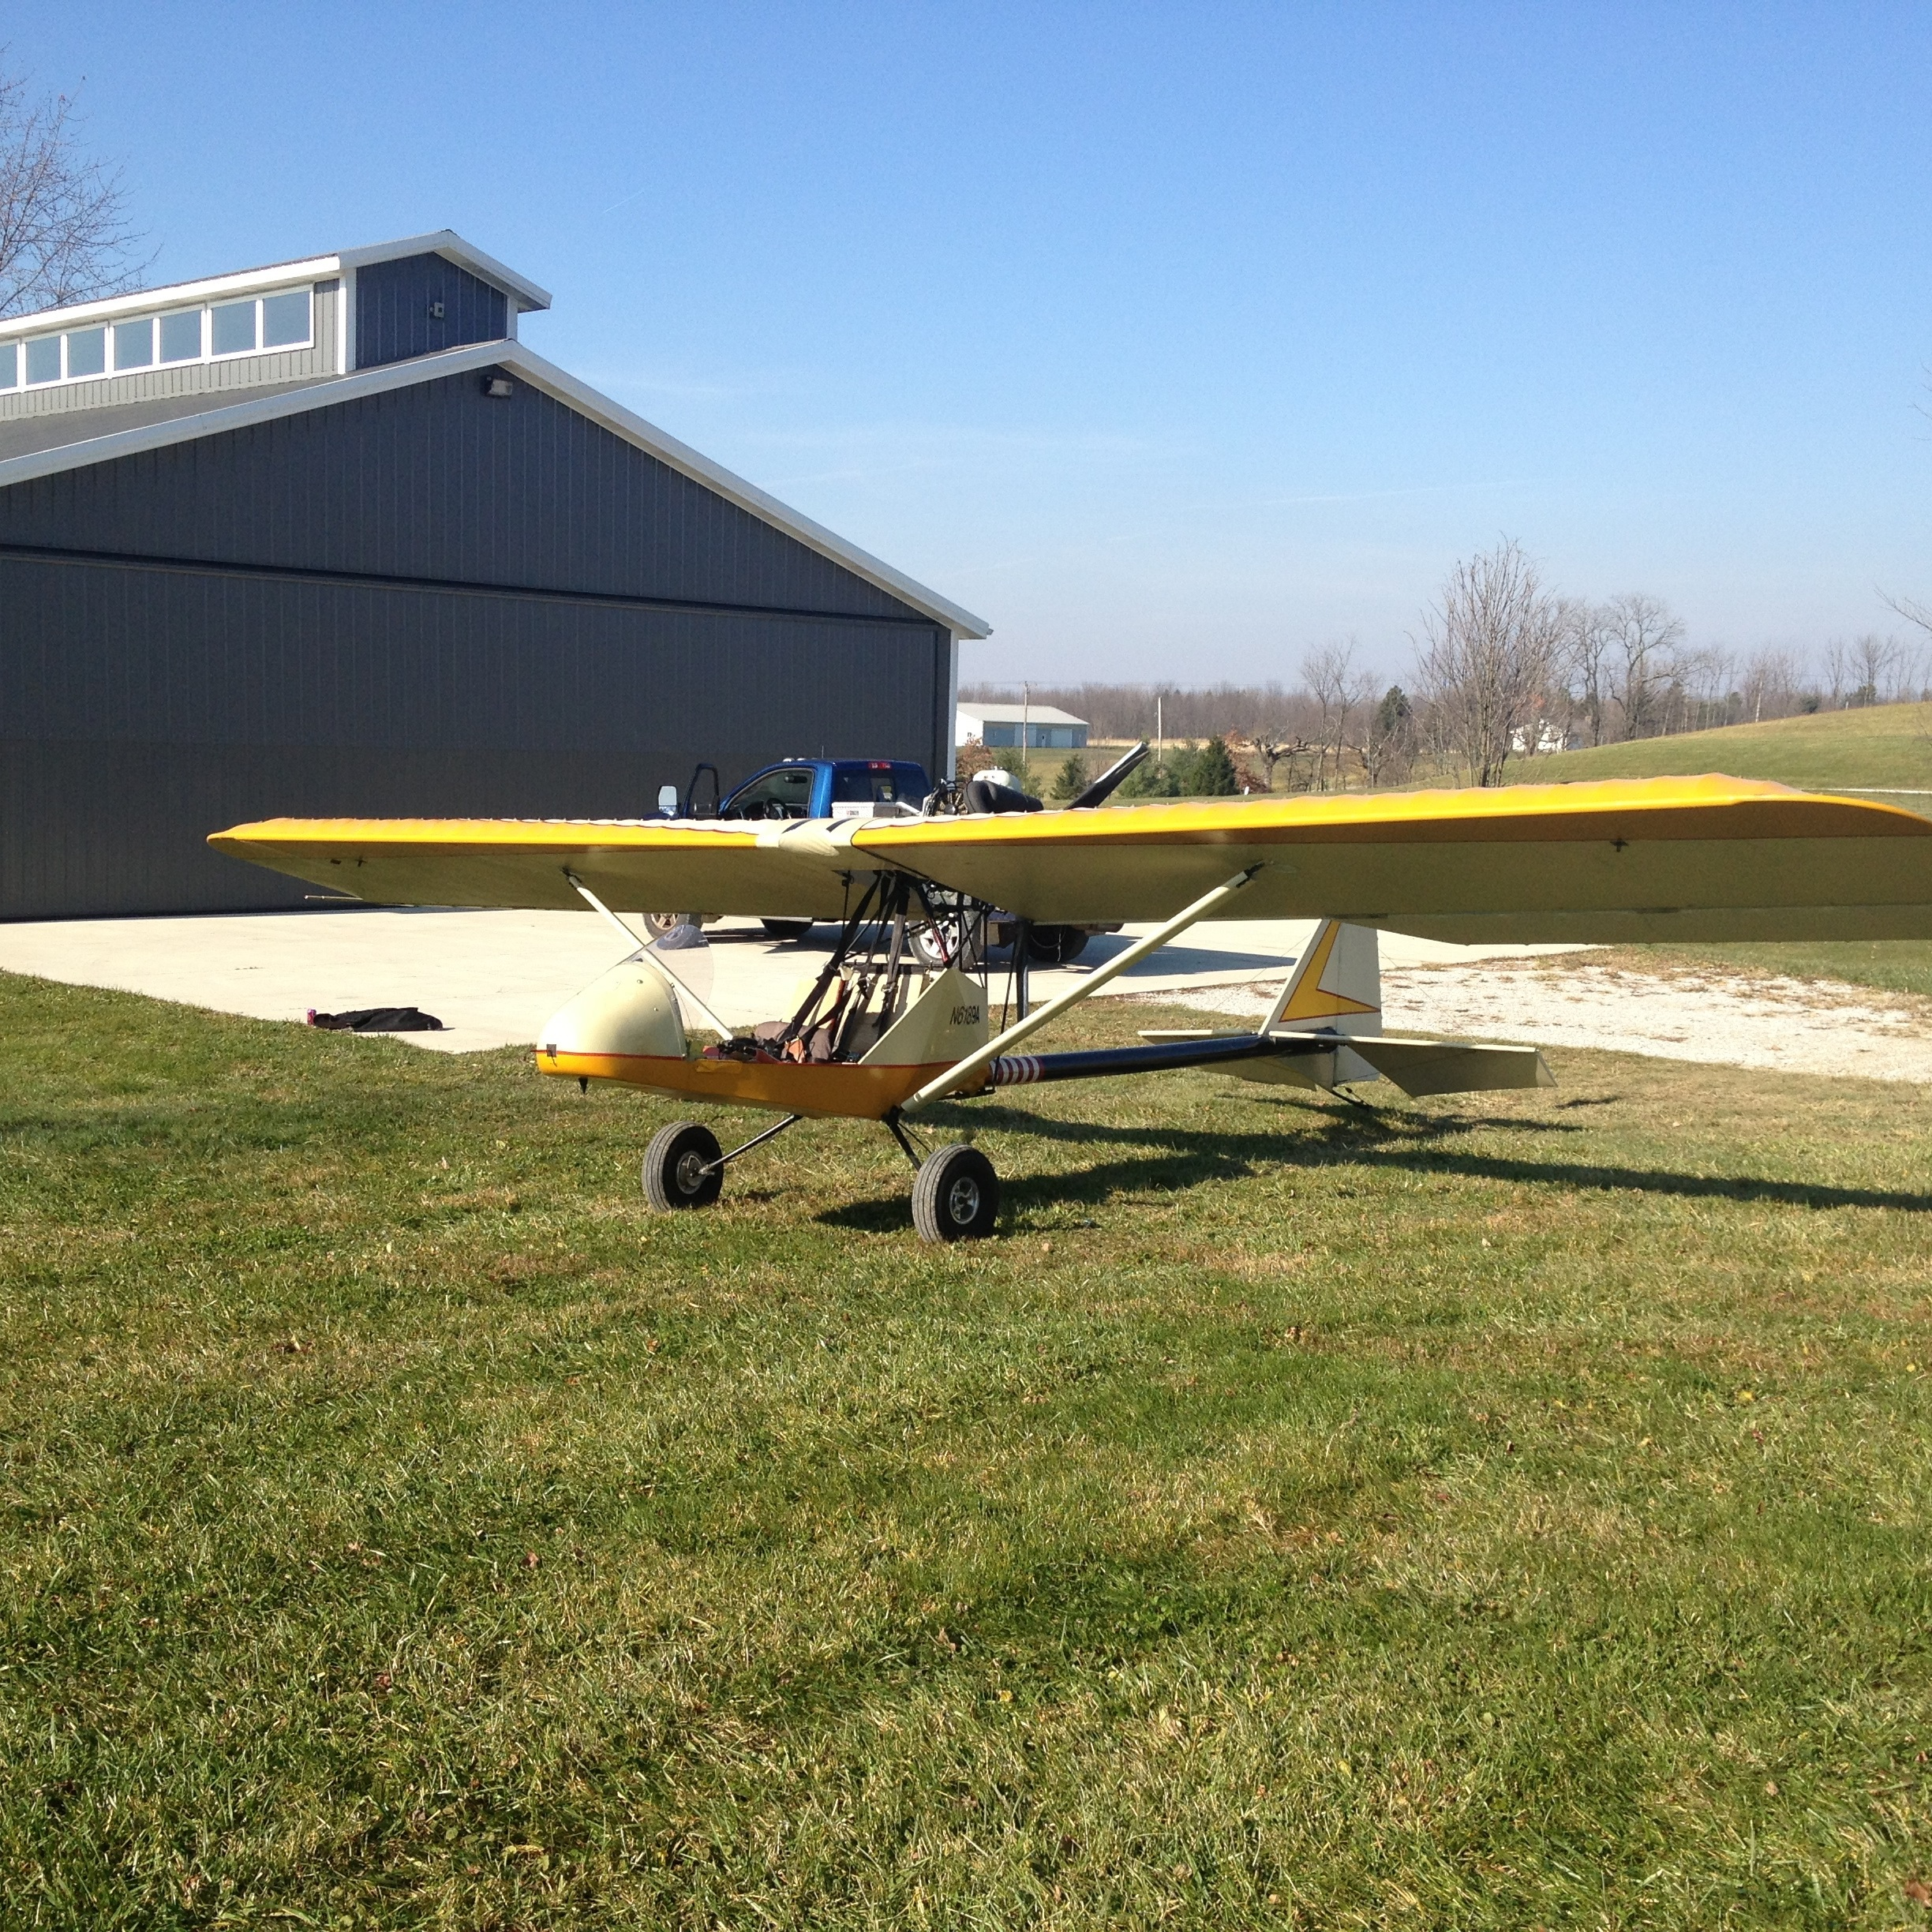 ... me an email or call! Ccmfarms(at)aol.com 216-288-4210 Good luck and  safe flying! -------- Low and Slow FireStar II Read this topic online here:  ...